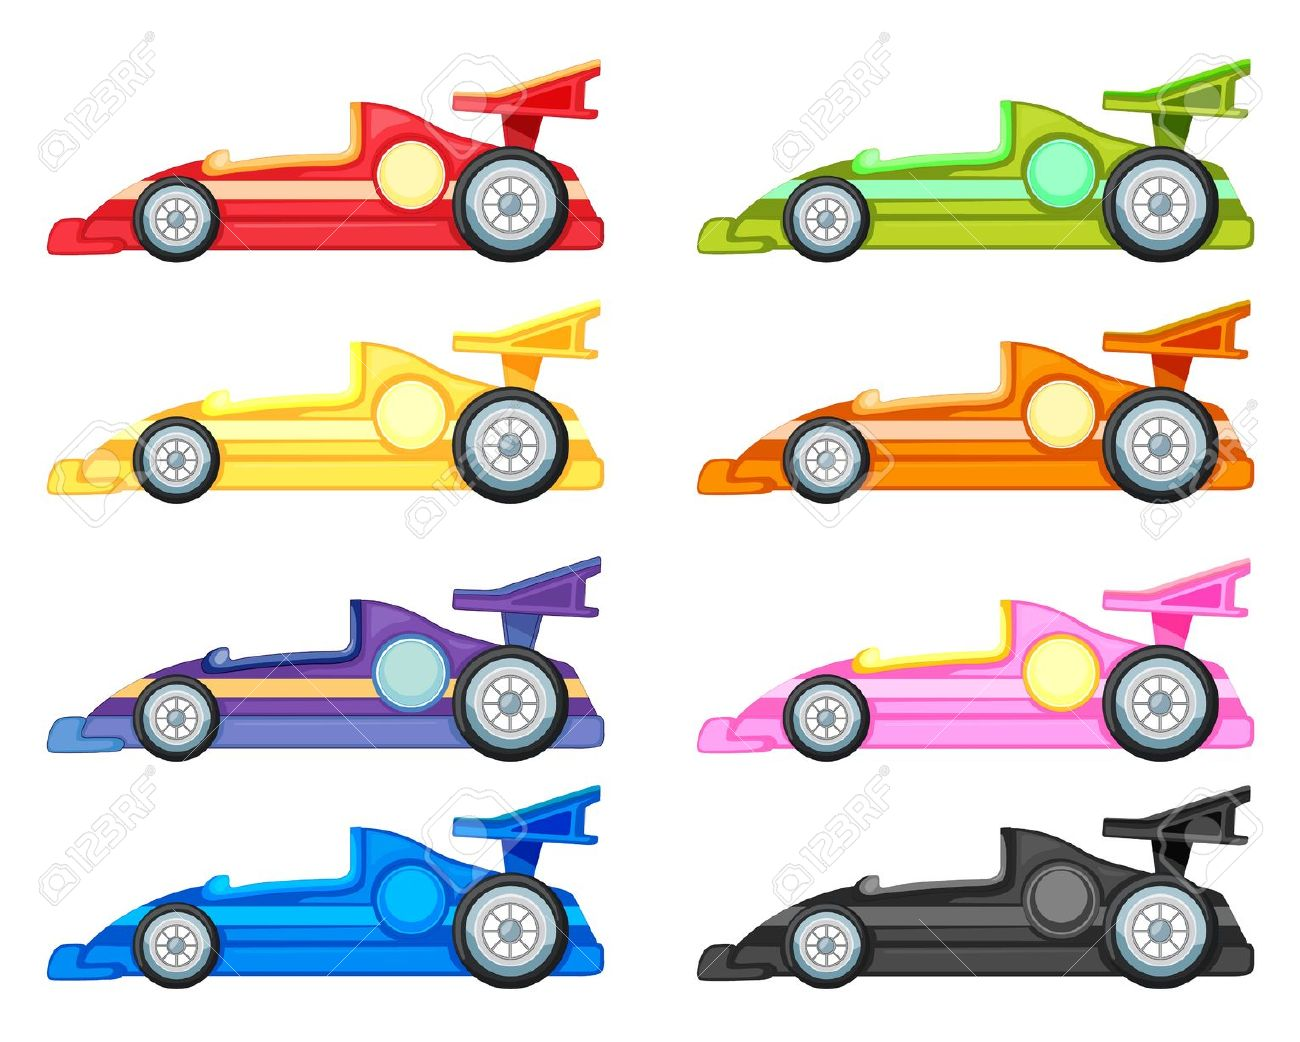 Race car clipart free clipartfest.